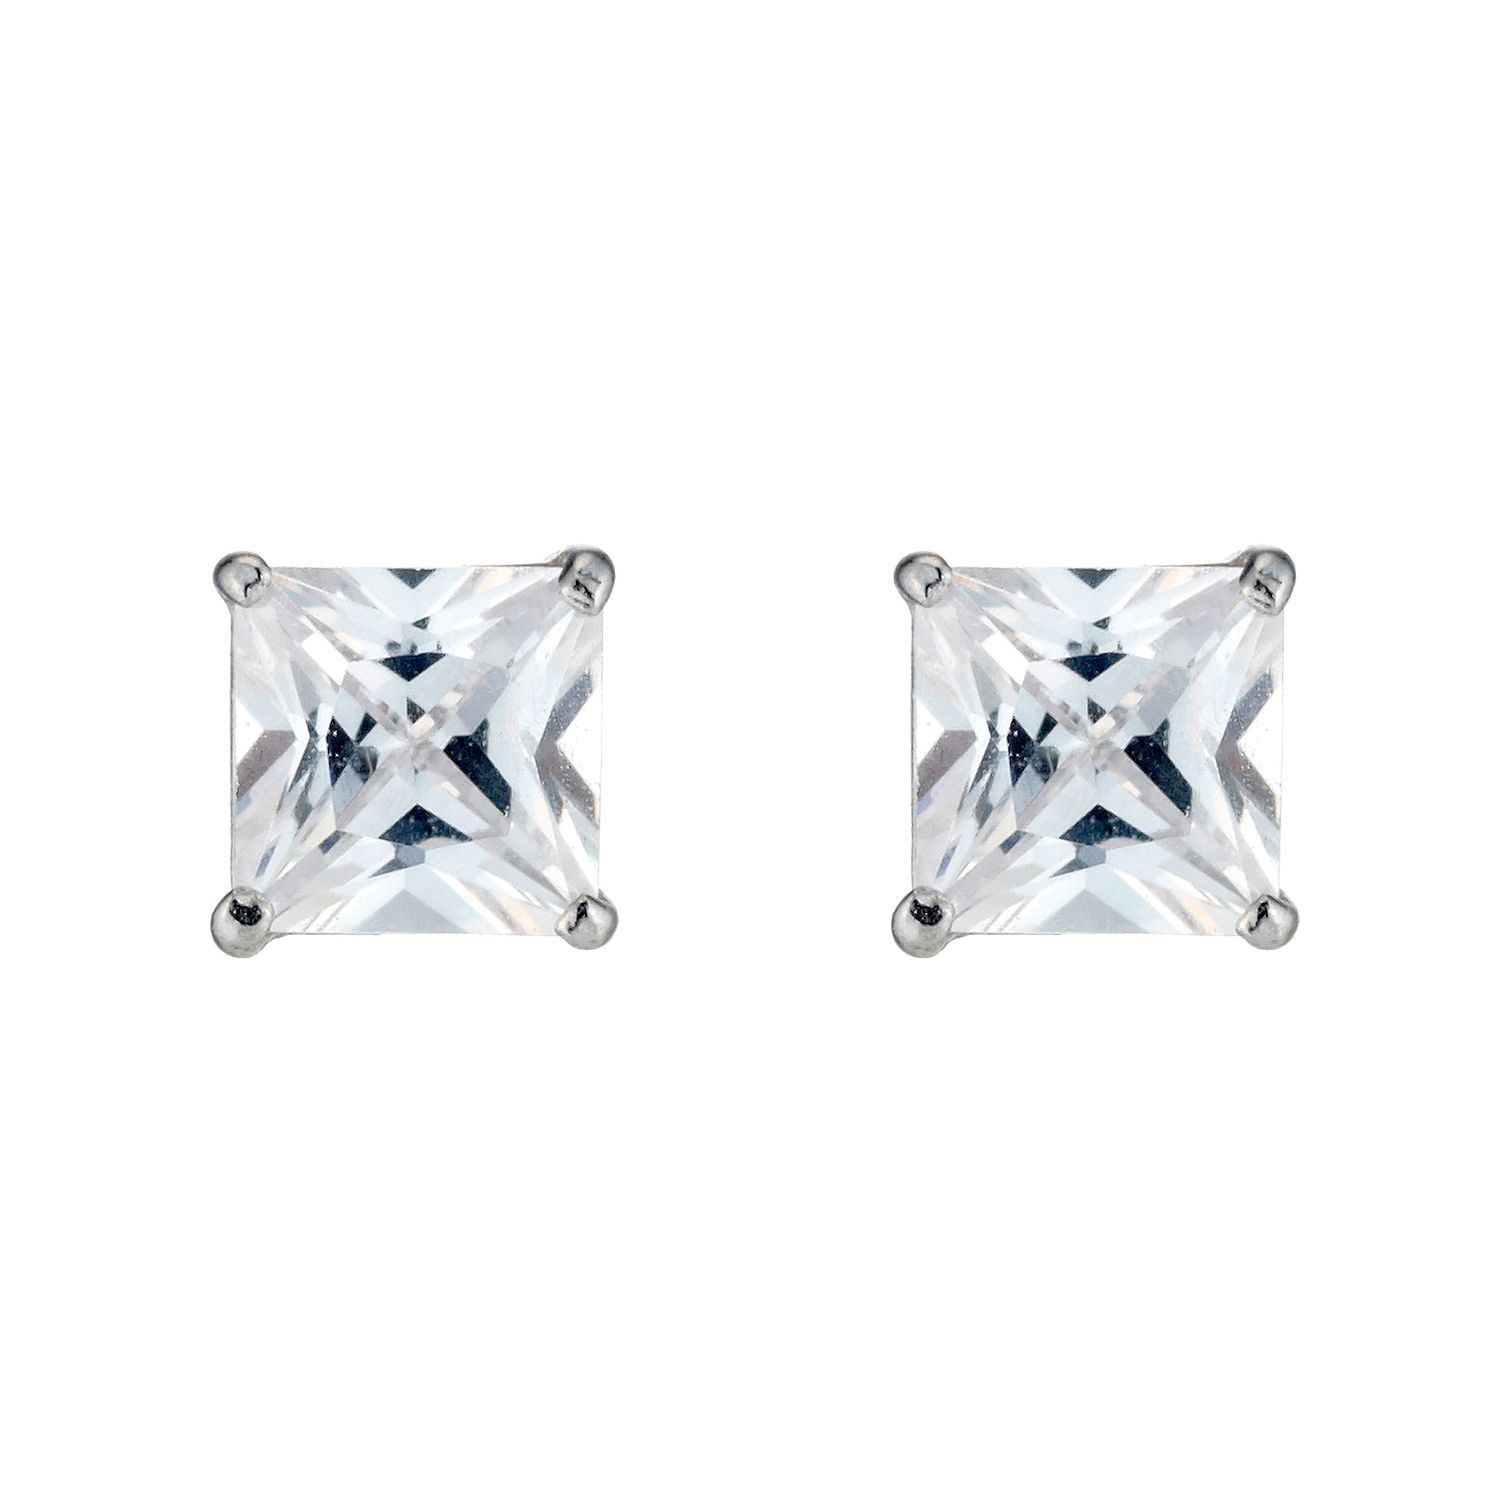 9ct White Gold Cubic Zirconia 4mm Square Stud Earrings - Product number 3416364